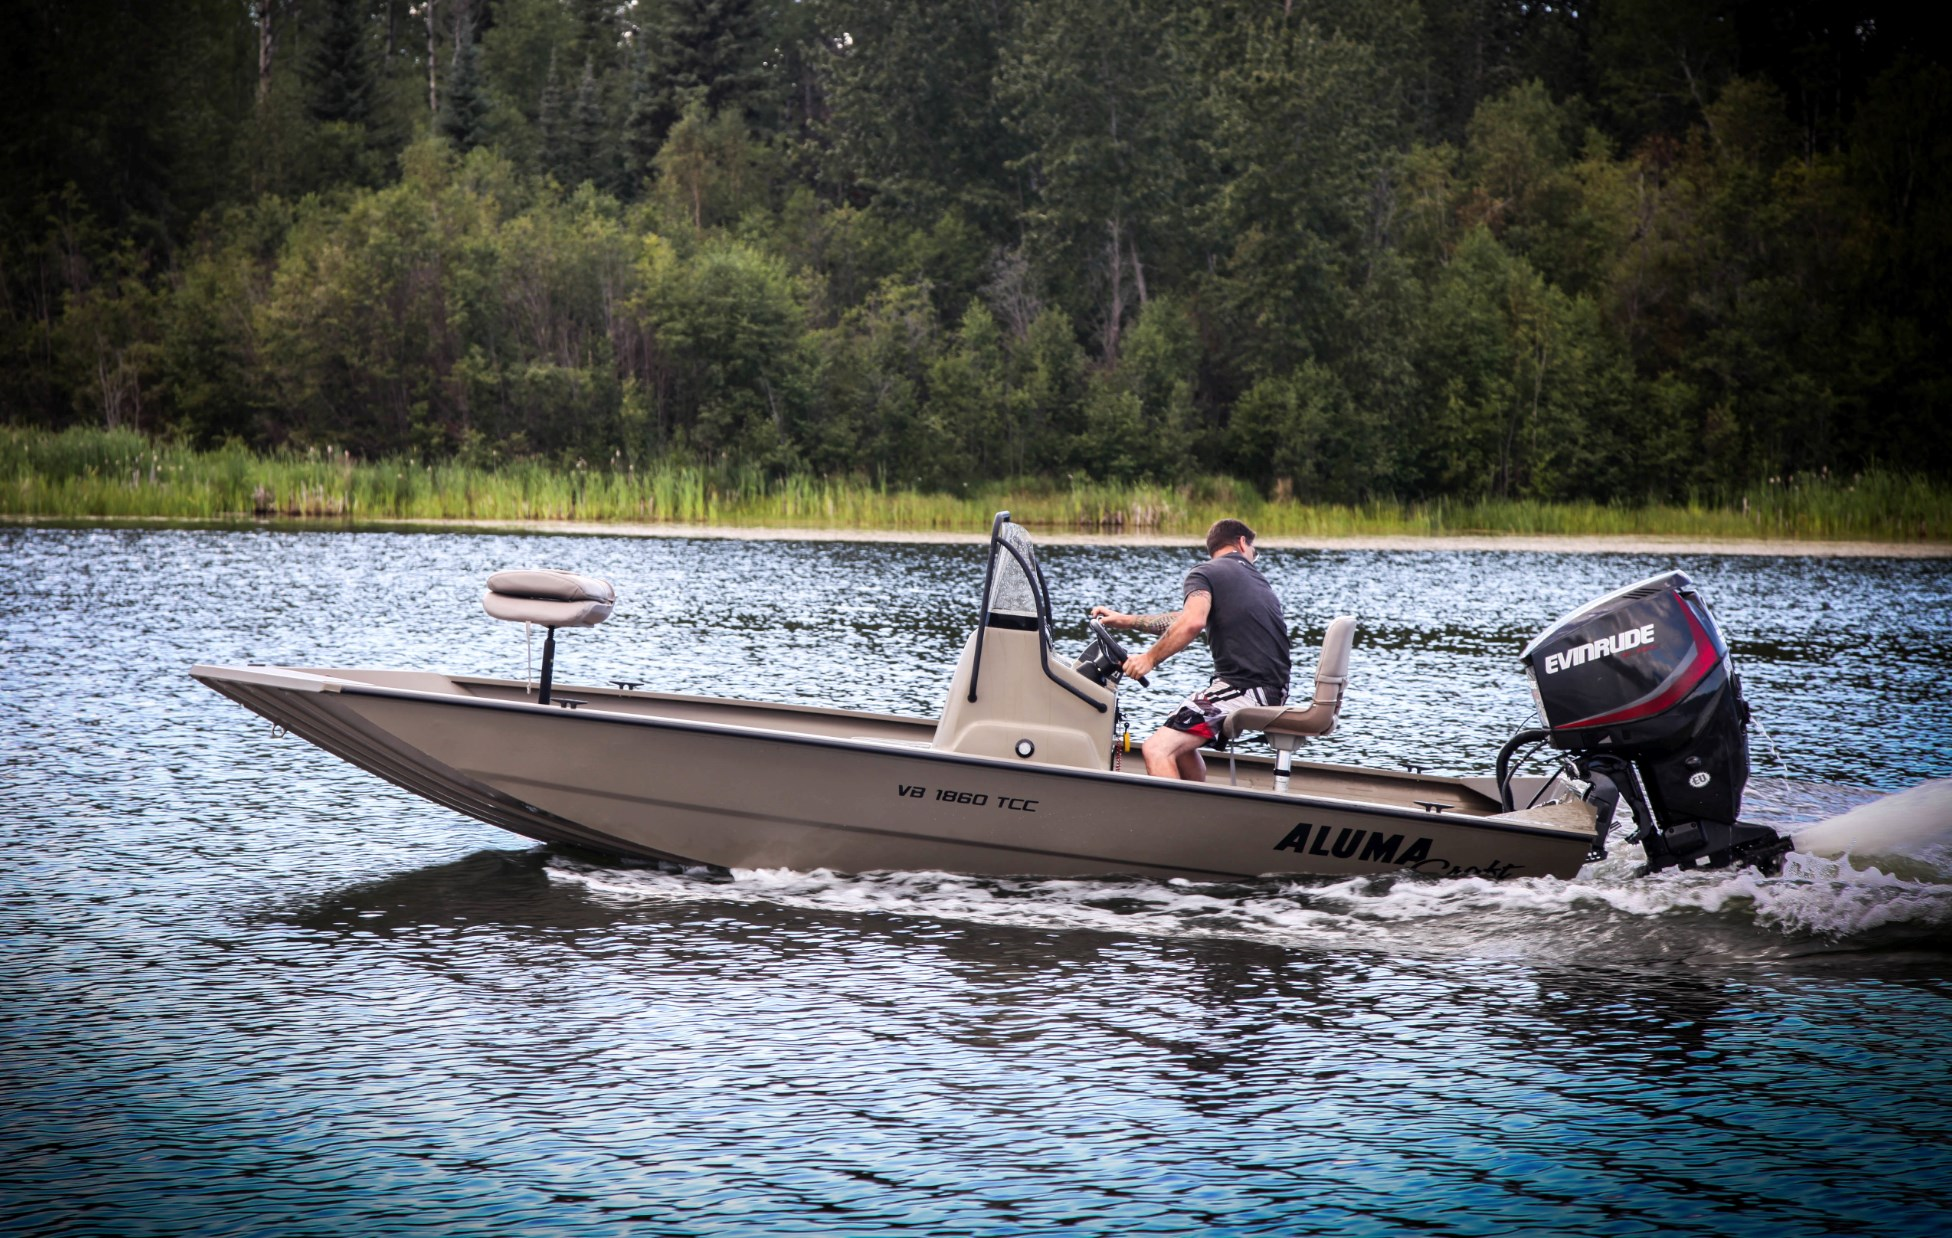 Images of Jet Boats For Sale Alberta